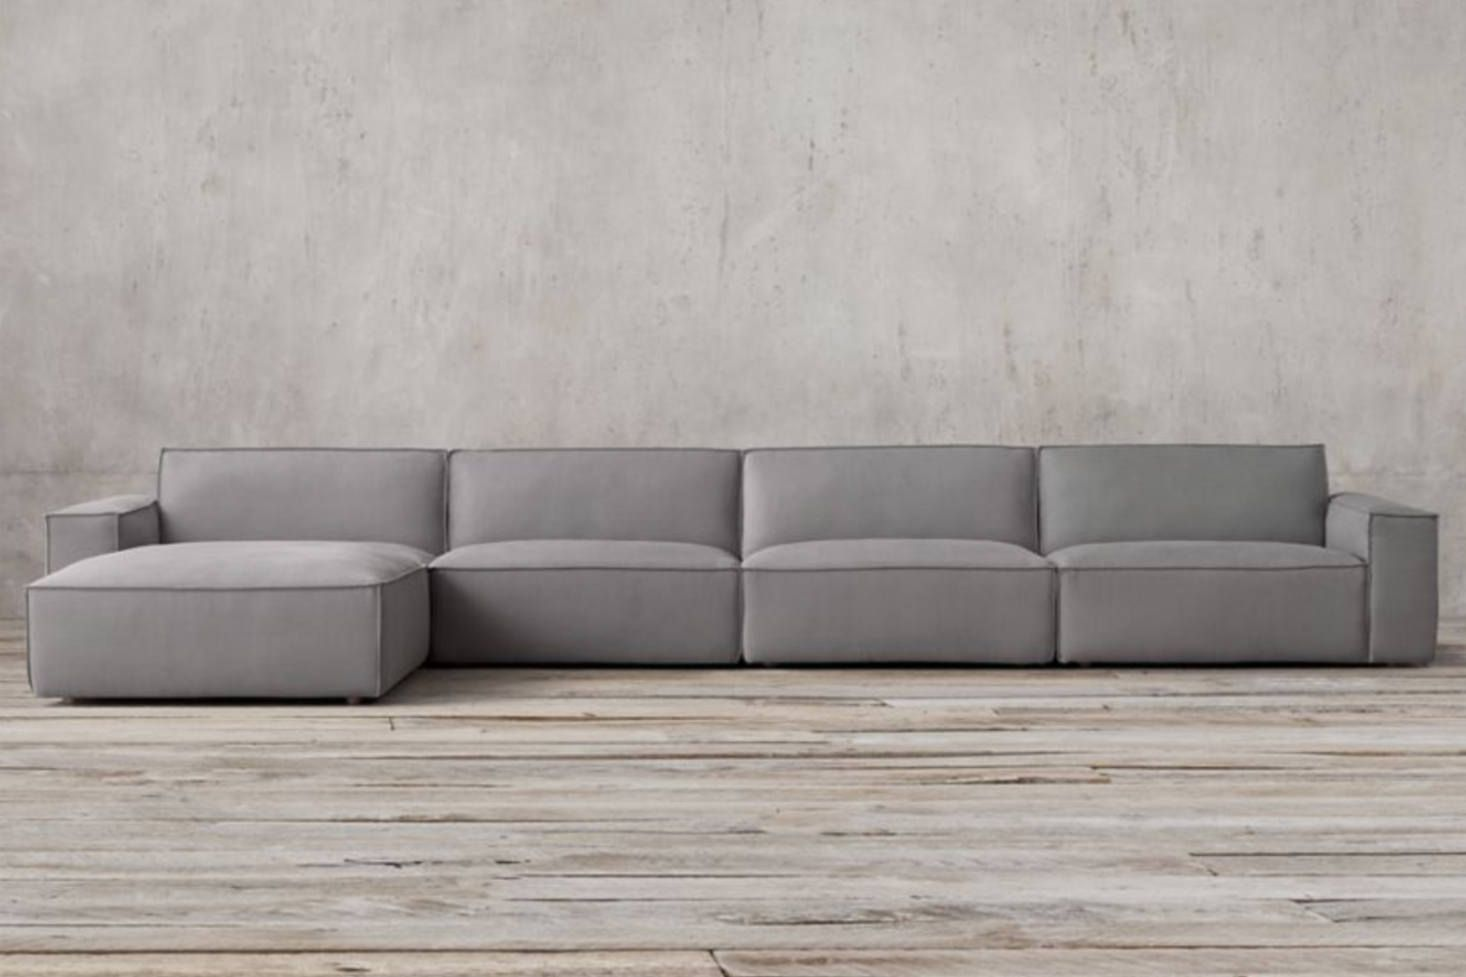 10 Easy Pieces Modular Building Block Sectional Sofas Remodelista Modular Sofa Sectional Sofa Modular Sectional Sofa